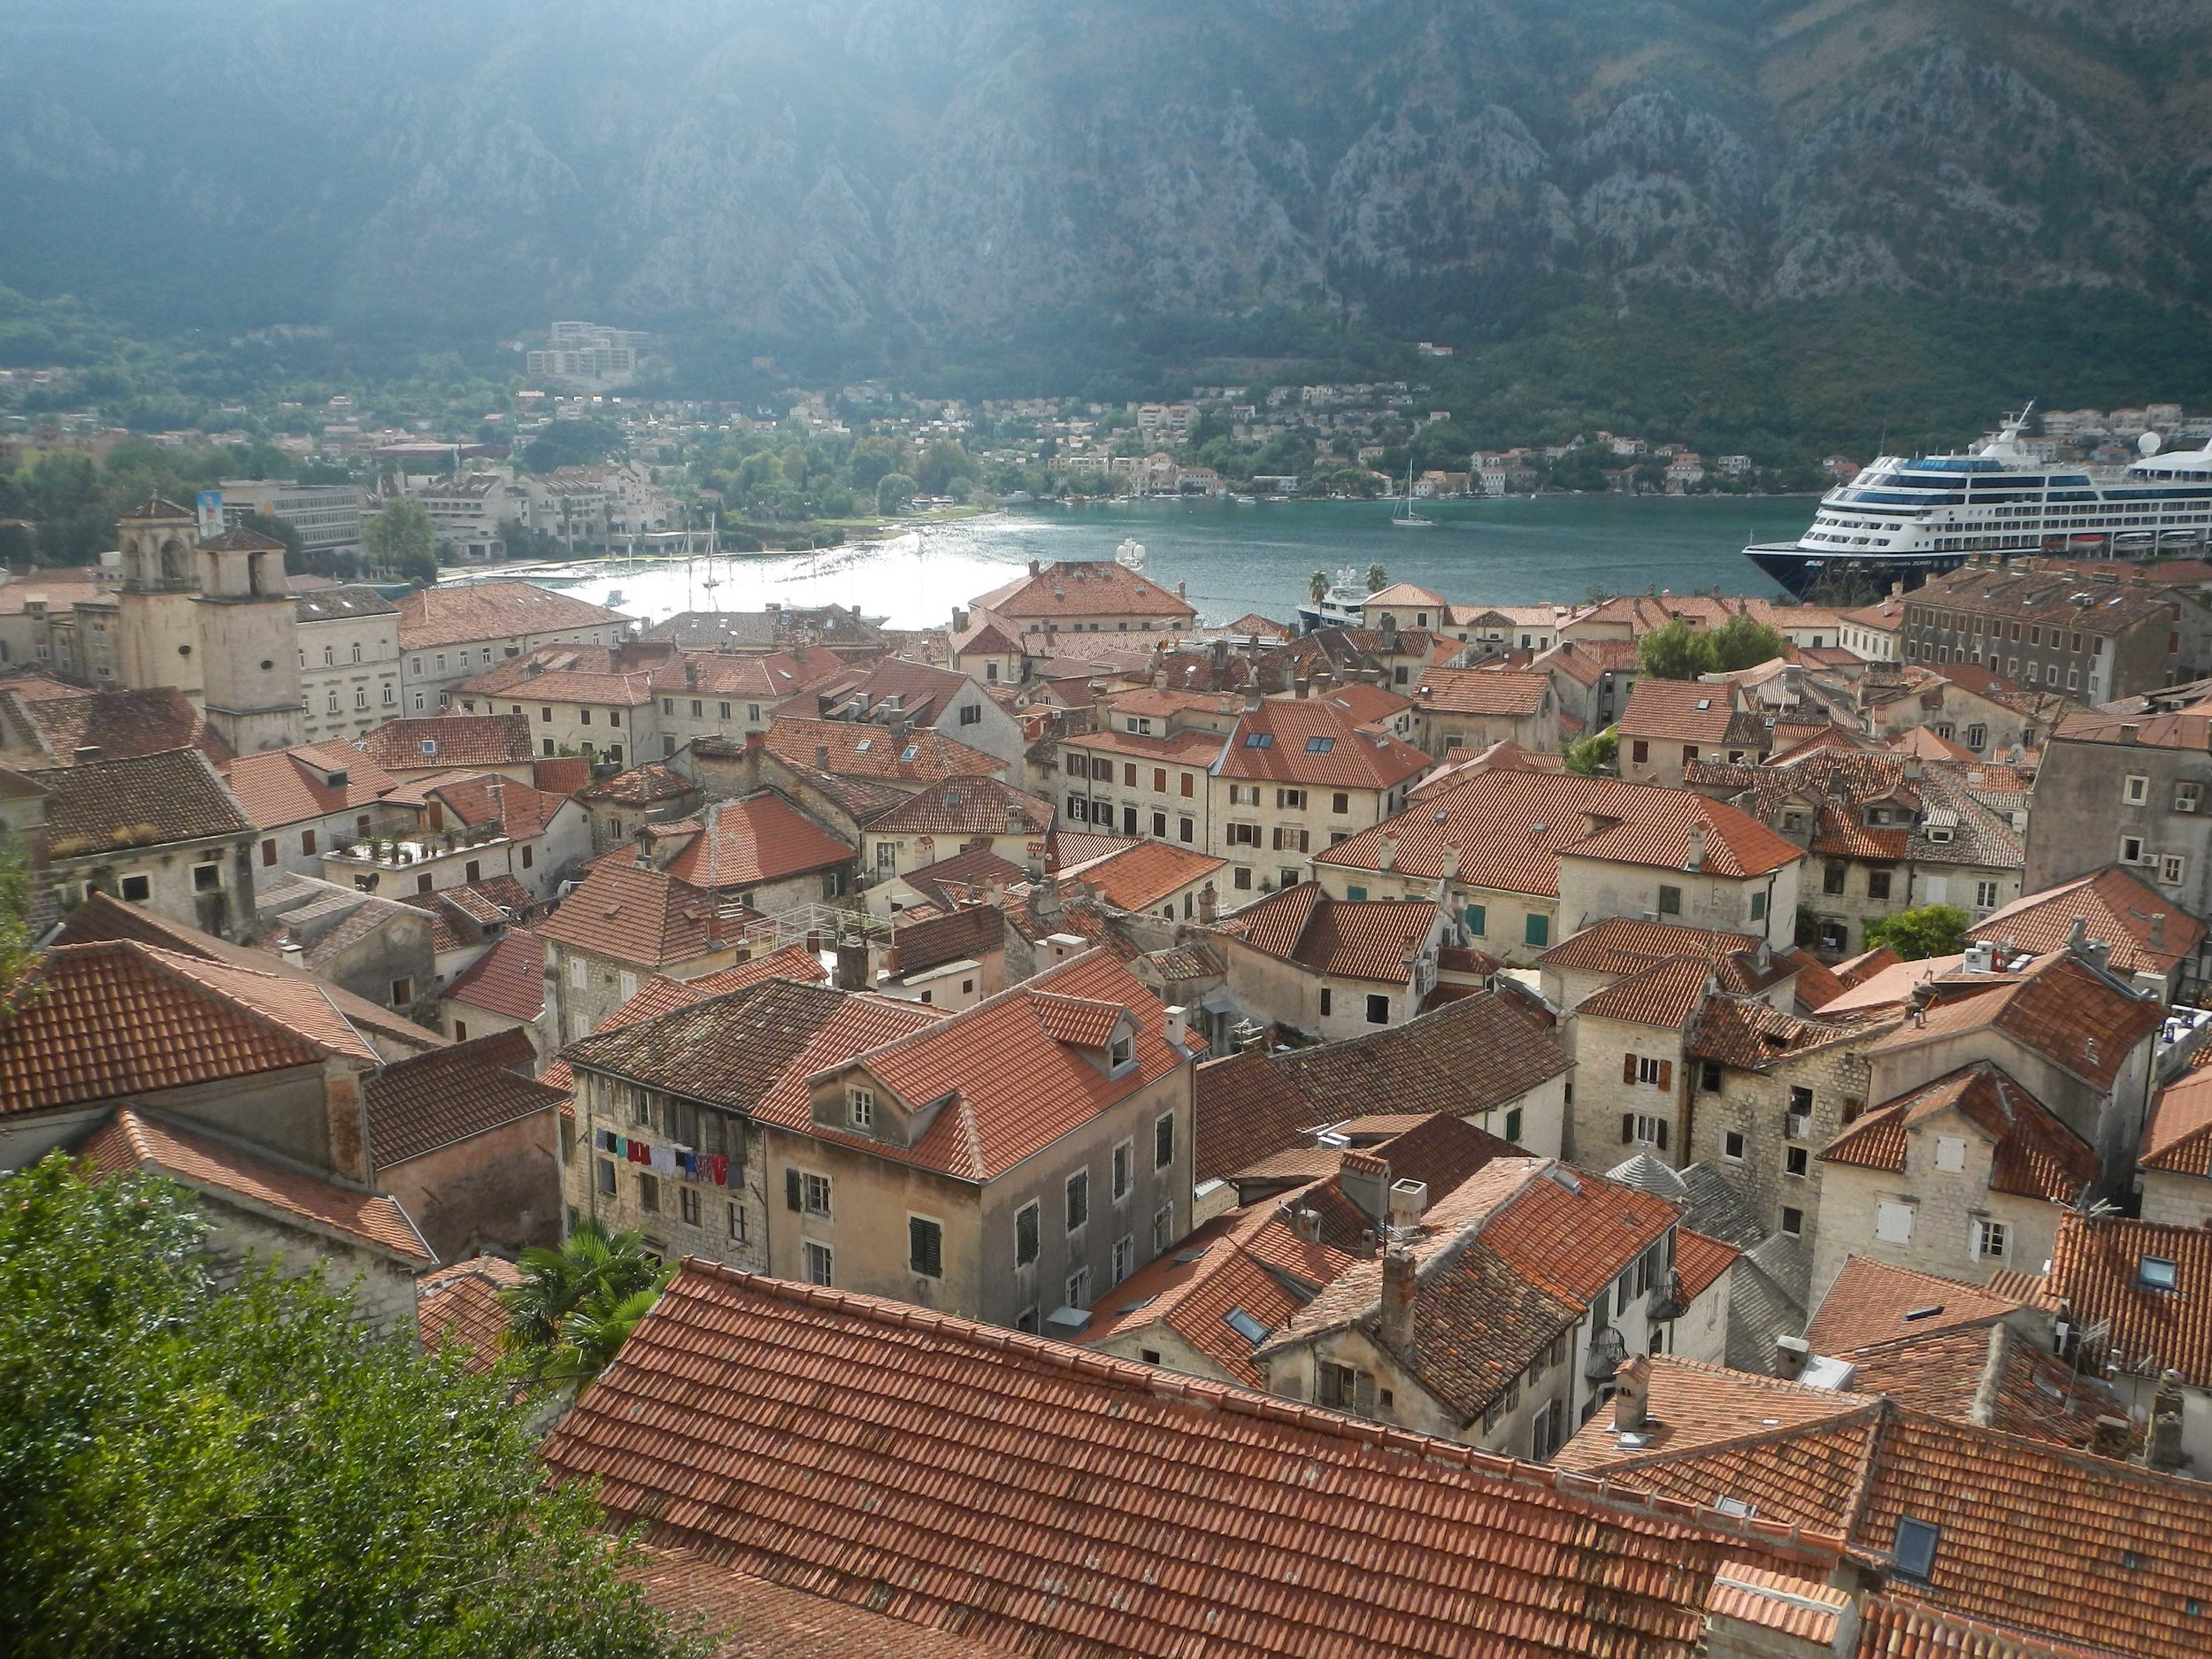 View of old city from fortress walk, Kotor, Montenegro